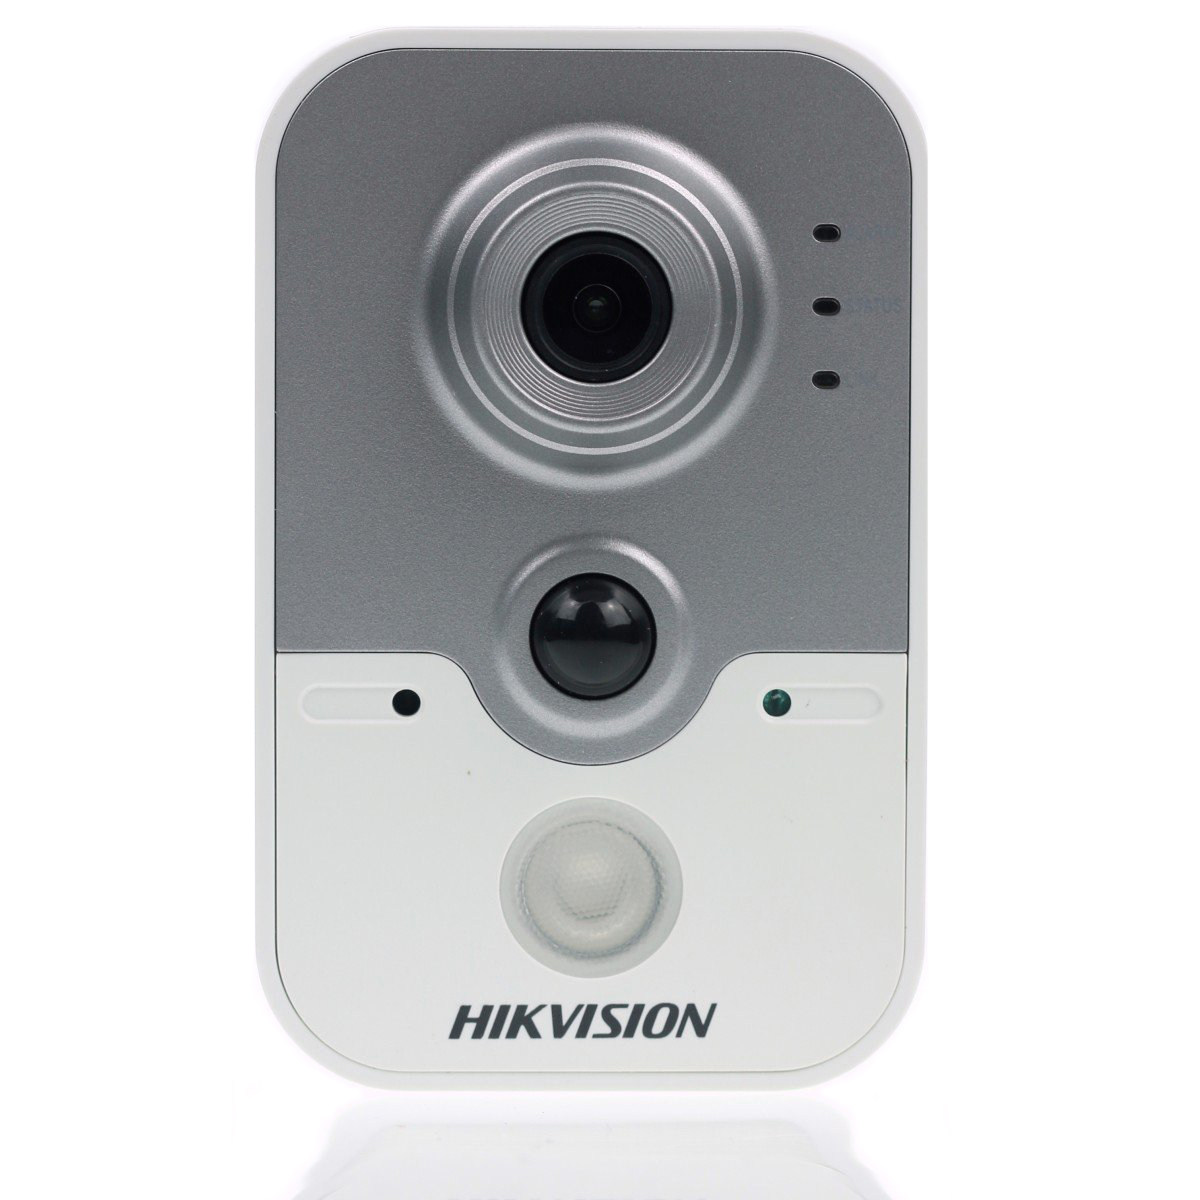 DS-2CD2442FWD-IW4MM HIKVISION 4mm Cube Camera, 4MP/960p, H264+, 2.8mm, WiFi, 120dB WDR, Day/Night, IR (10m), Mic, speaker, PIR, I/O, PoE/12VDC ************************* SPECIAL ORDER ITEM NO RETURNS OR SUBJECT TO RESTOCK FEE *************************